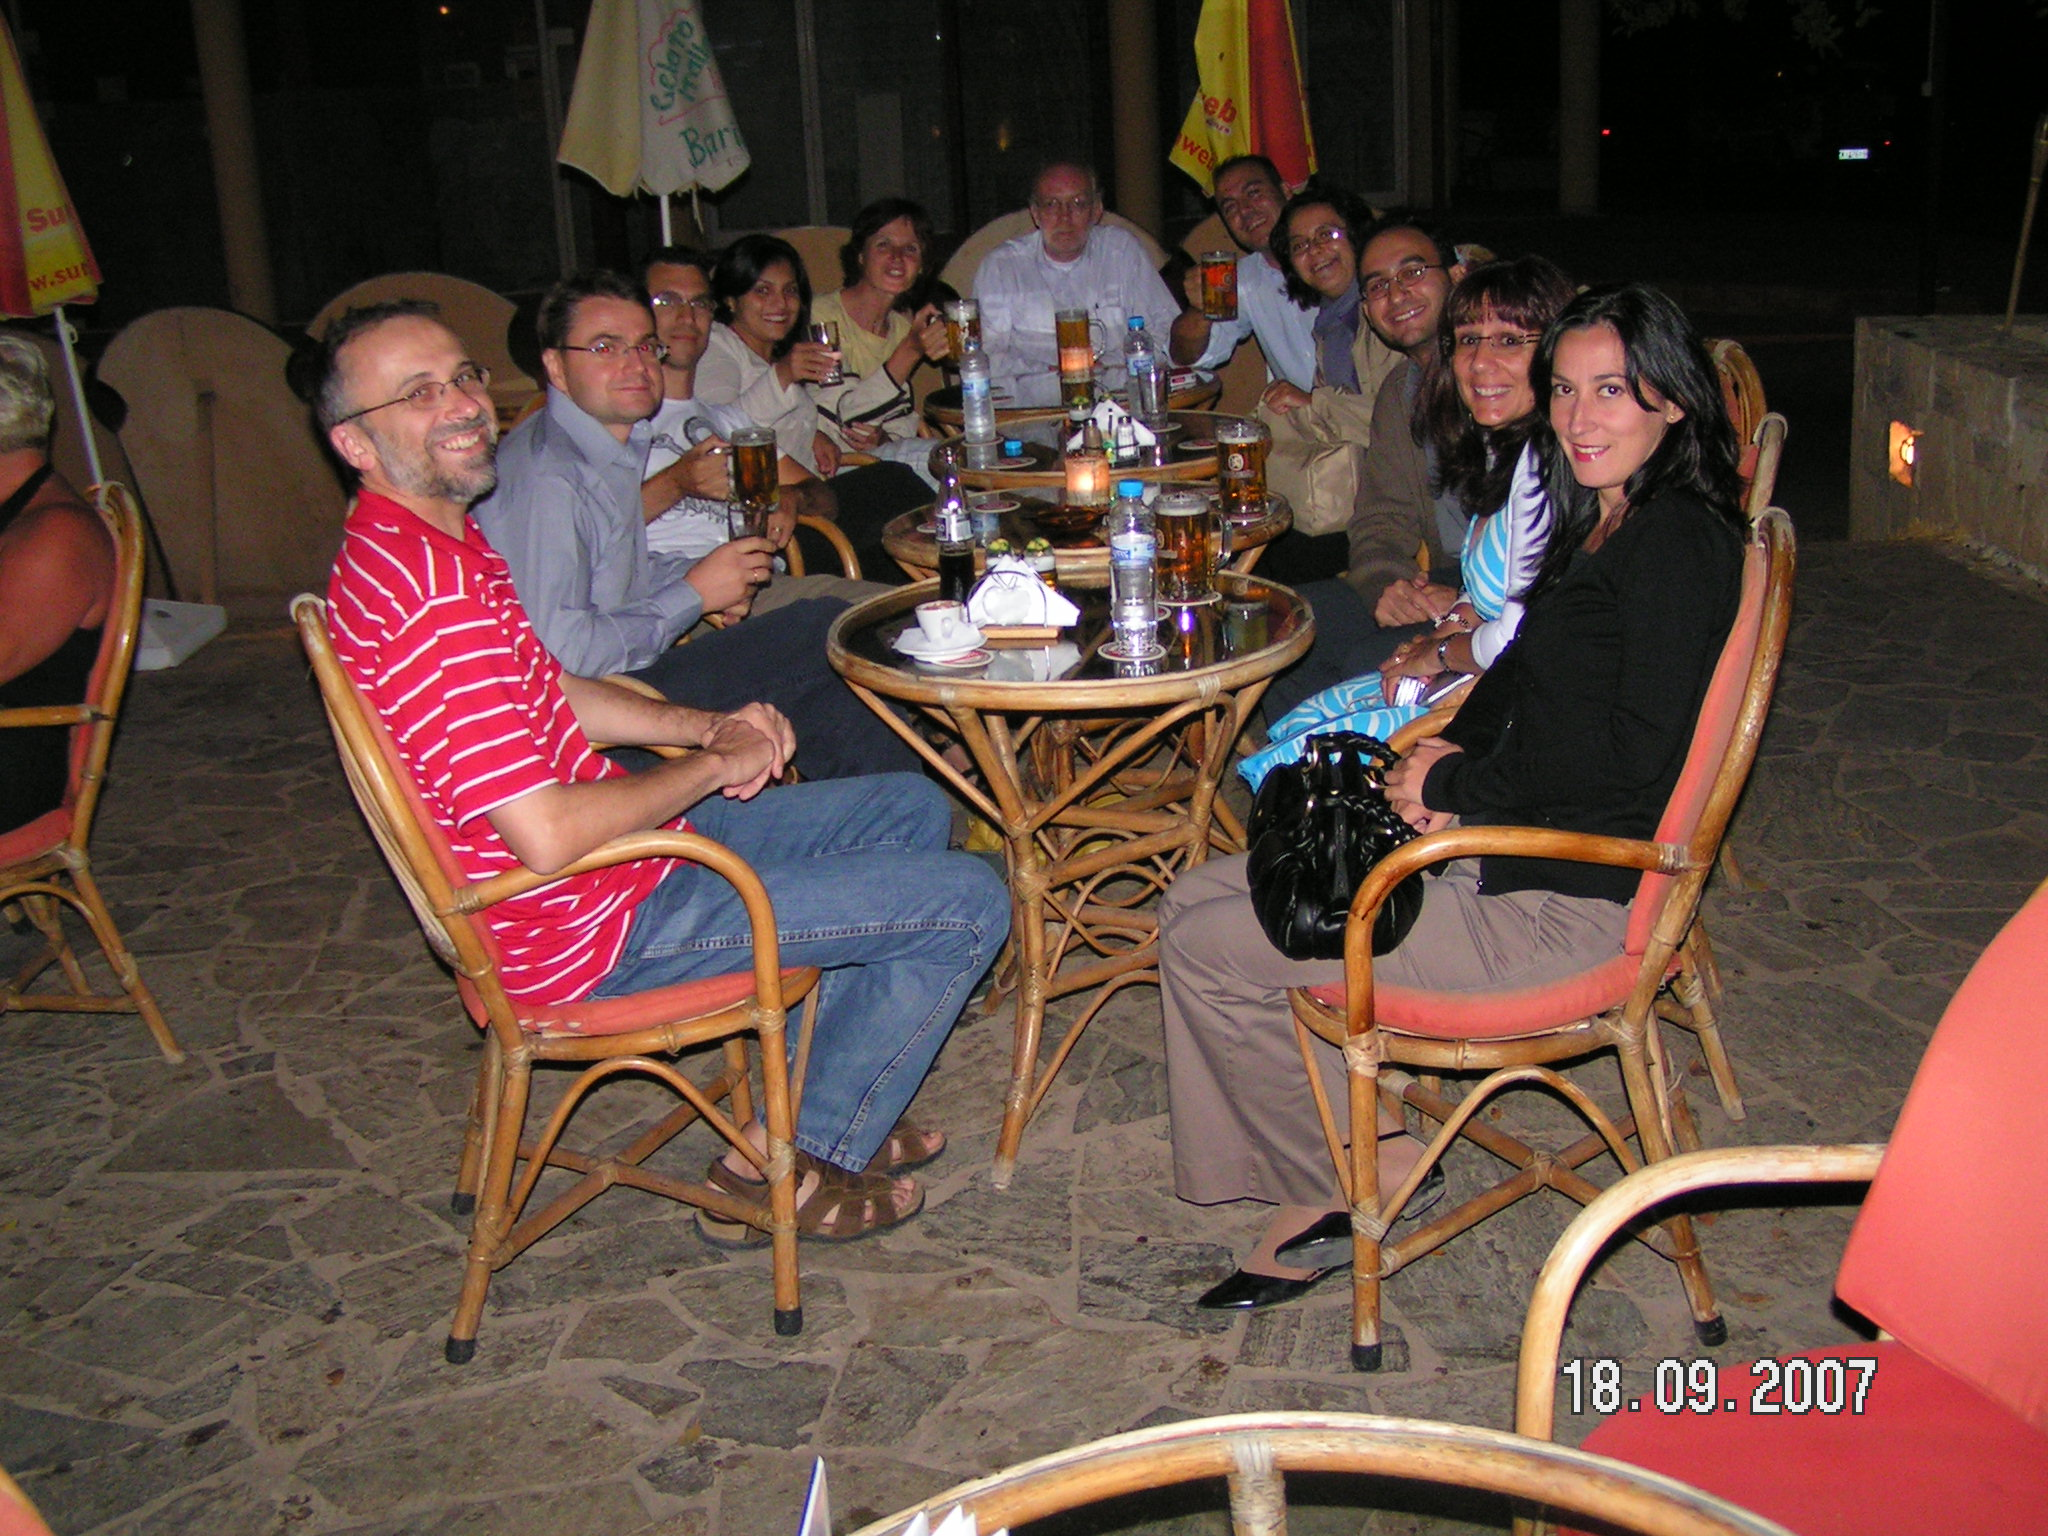 Wining and dining with workshop participants